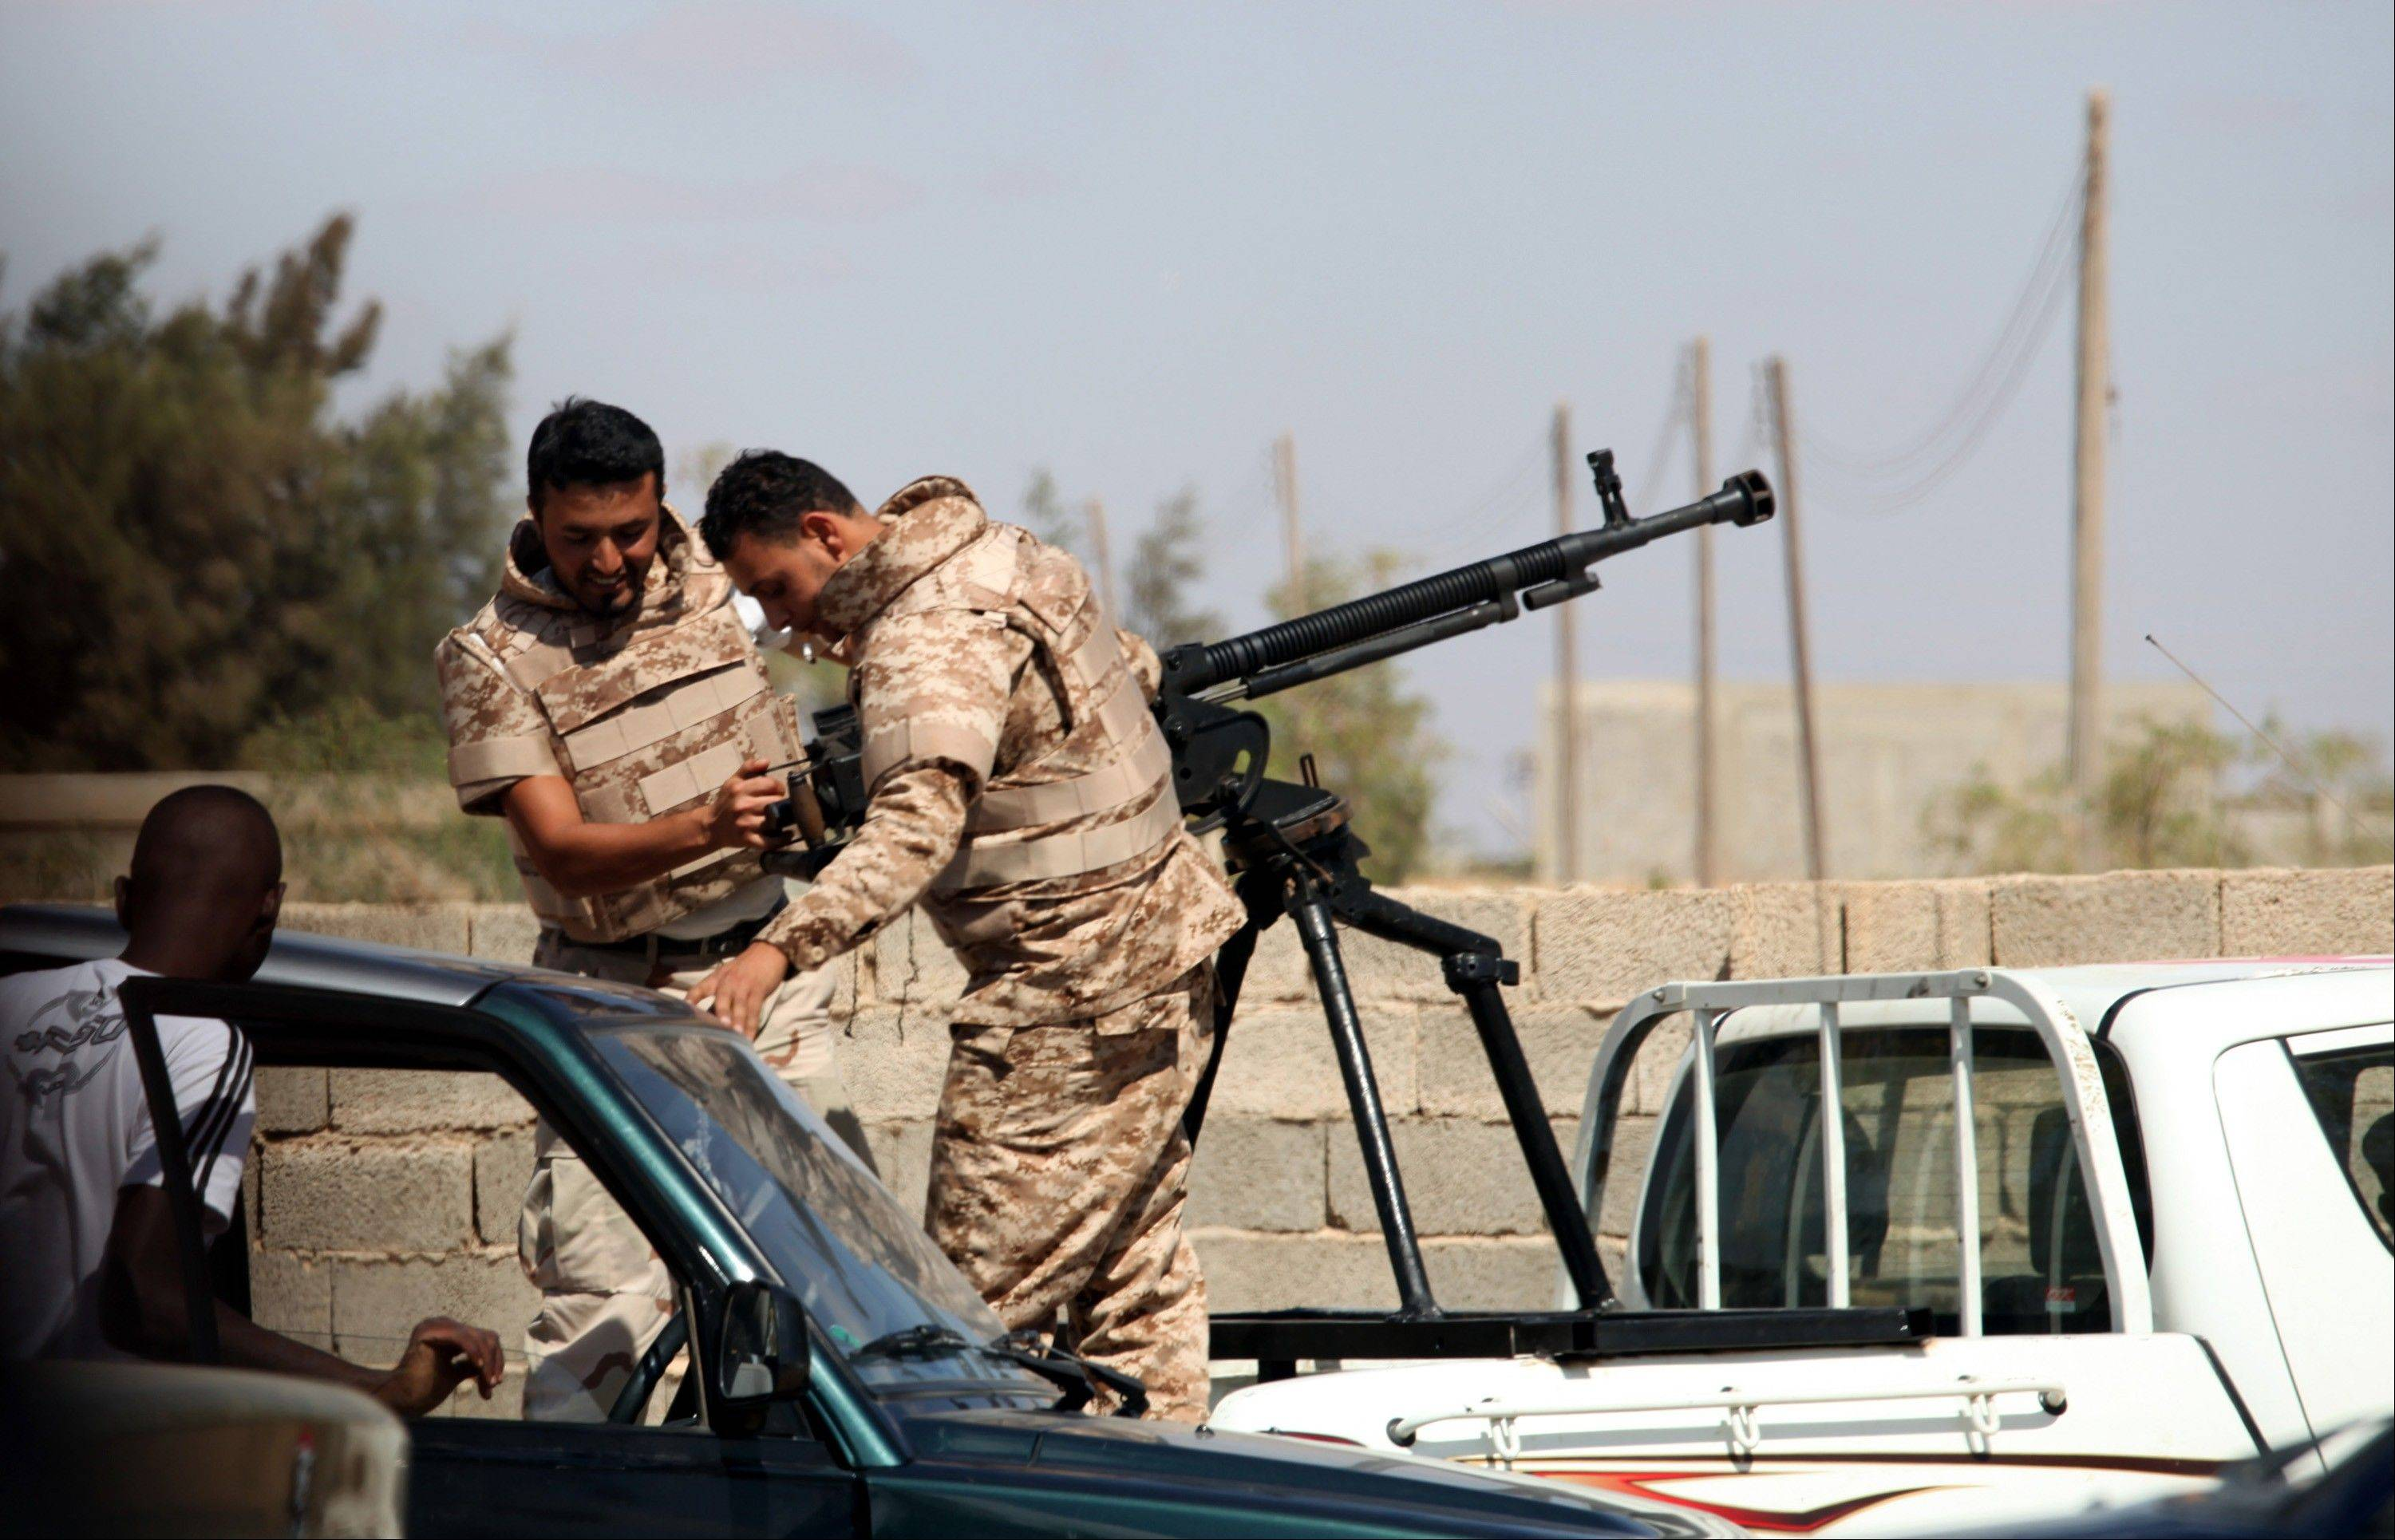 Soldiers from the Libyan National Army get ready Saturday to enter Rafallah al-sahati Islamic Militia Brigades compound, one of the compound buildings can be seen behind the wall, in Benghazi, Libya.